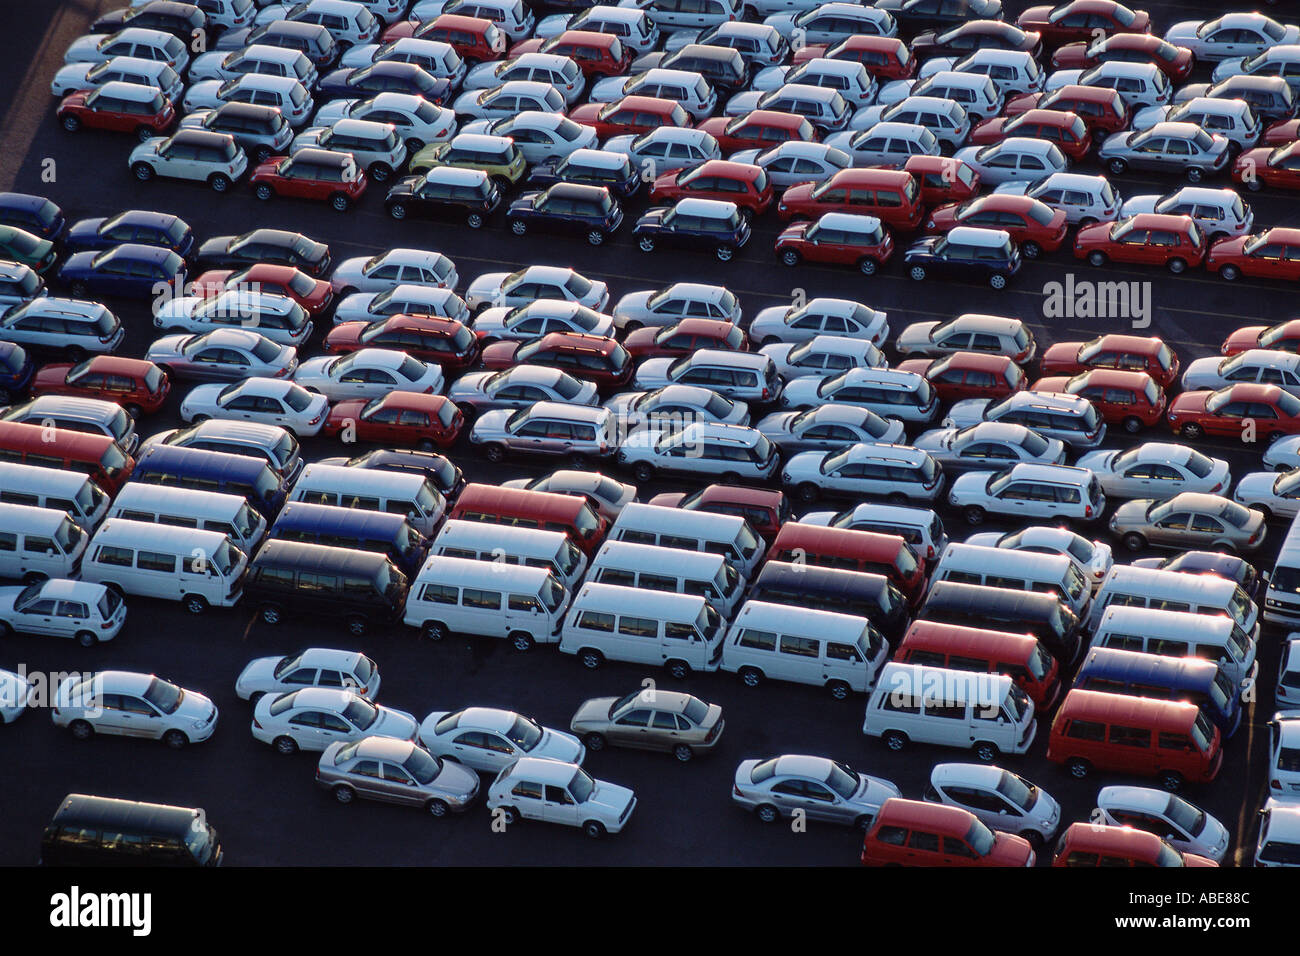 Cars parked at a motor factory - Stock Image